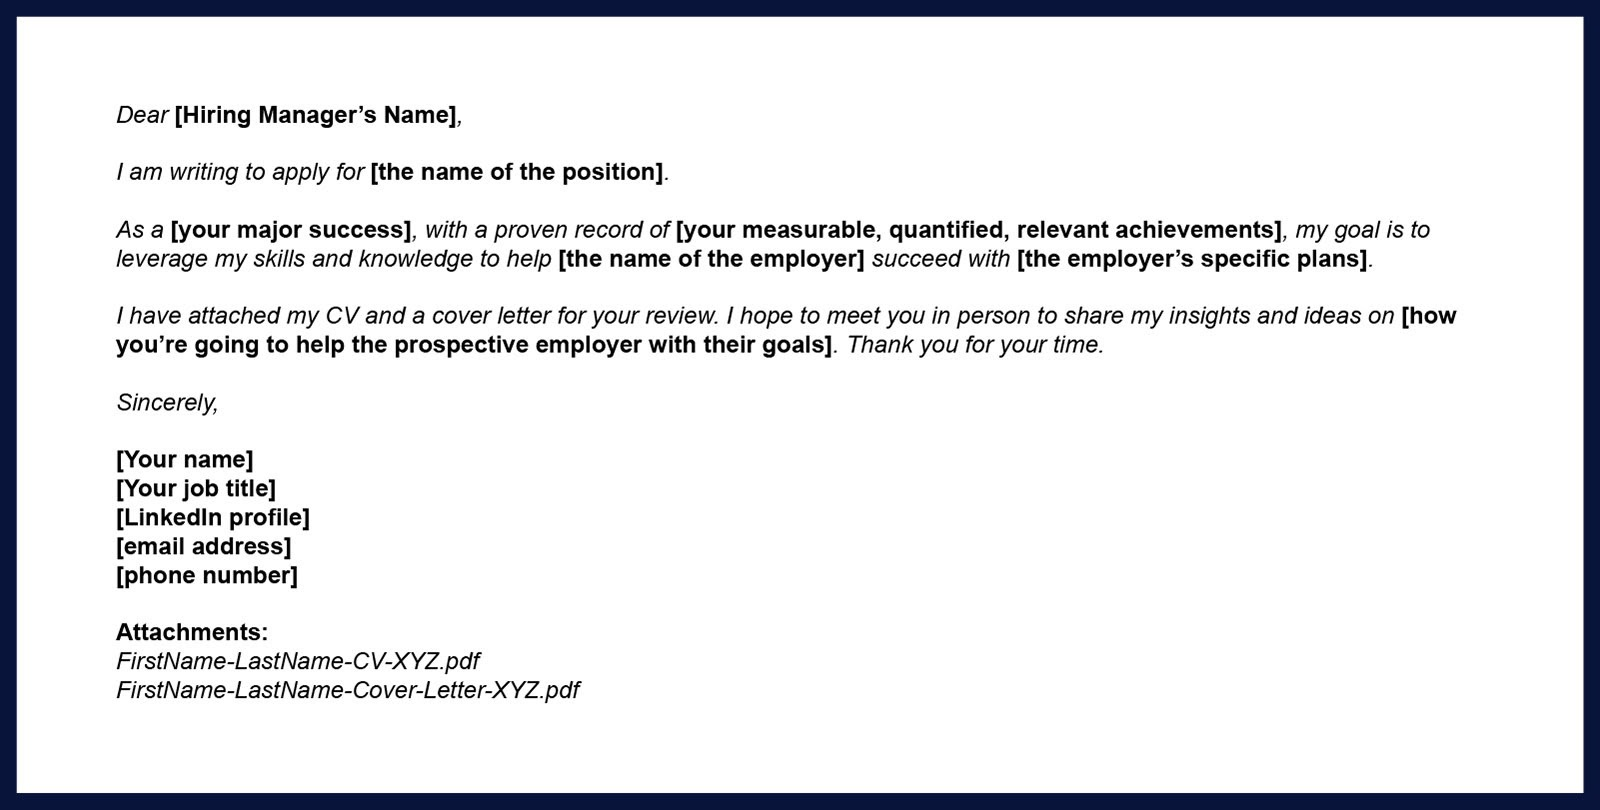 tips for sending your cv via email topcv title resume demonstrated abilities examples Resume Title For Sending Resume